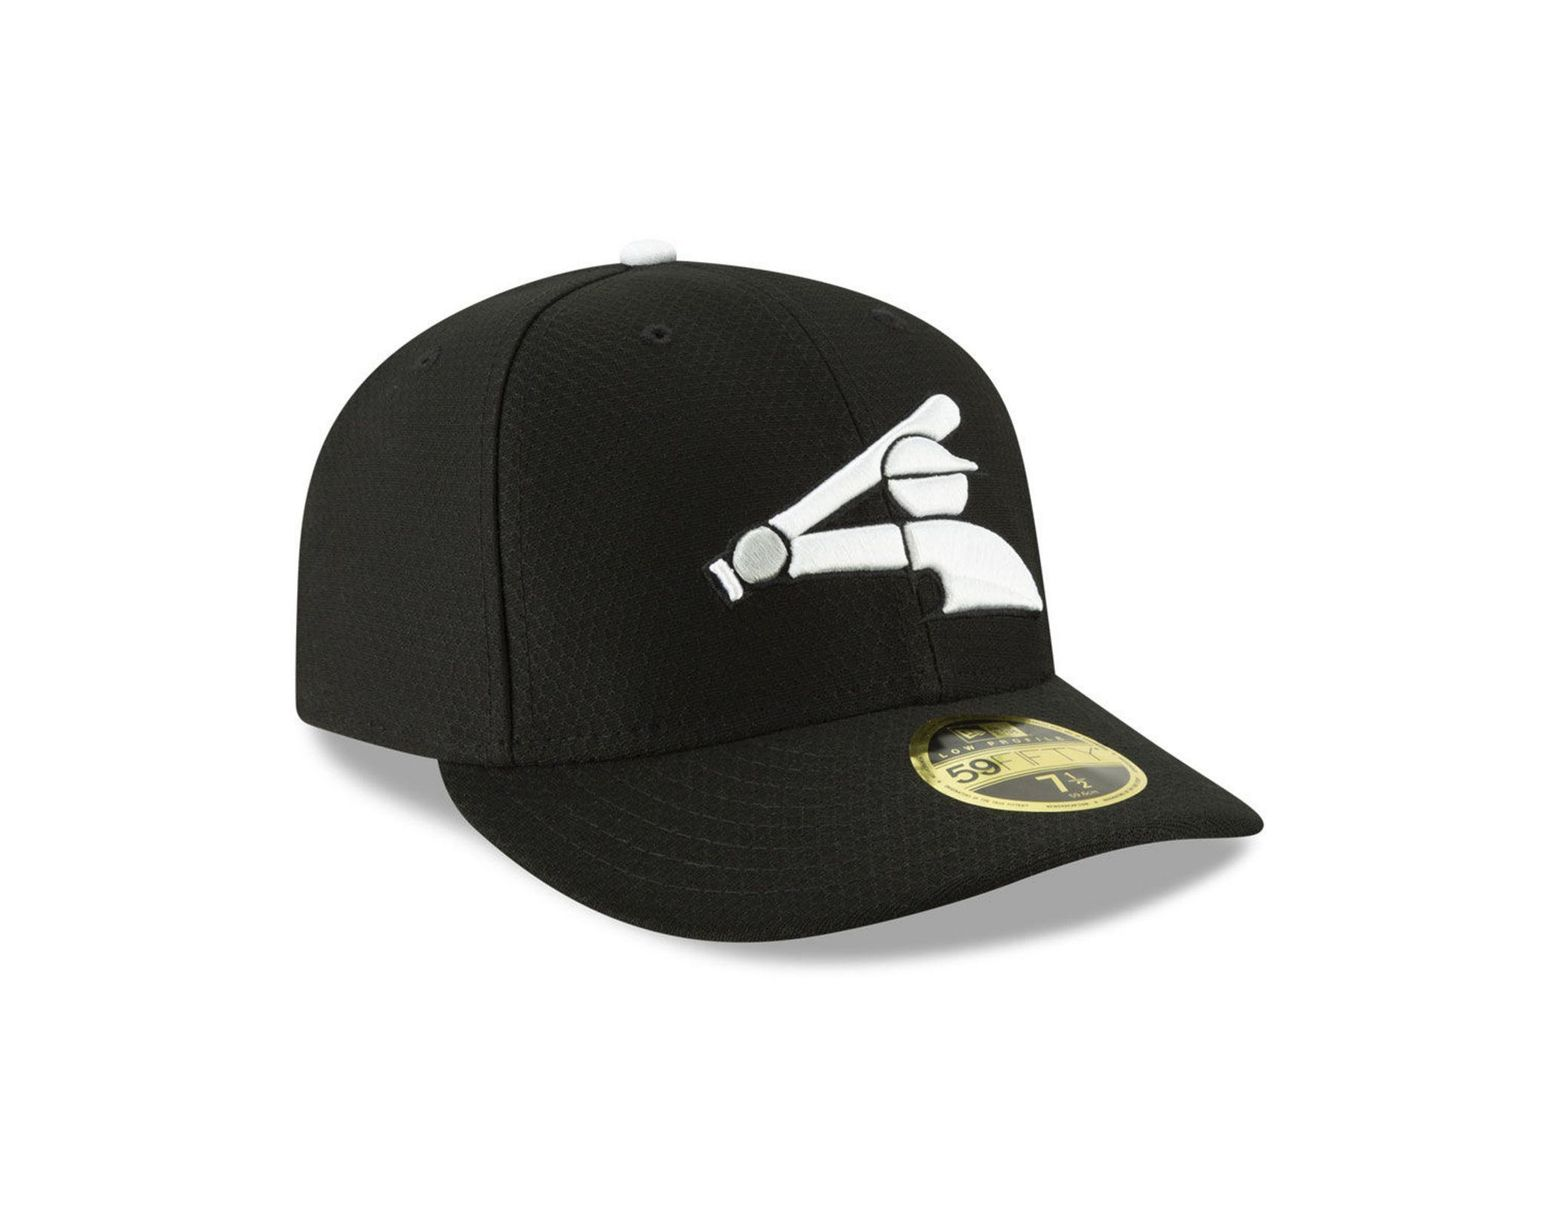 78fd47f19 KTZ Chicago White Sox Batting Practice Low Profile 59fifty-fitted Cap in  Black for Men - Save 10% - Lyst